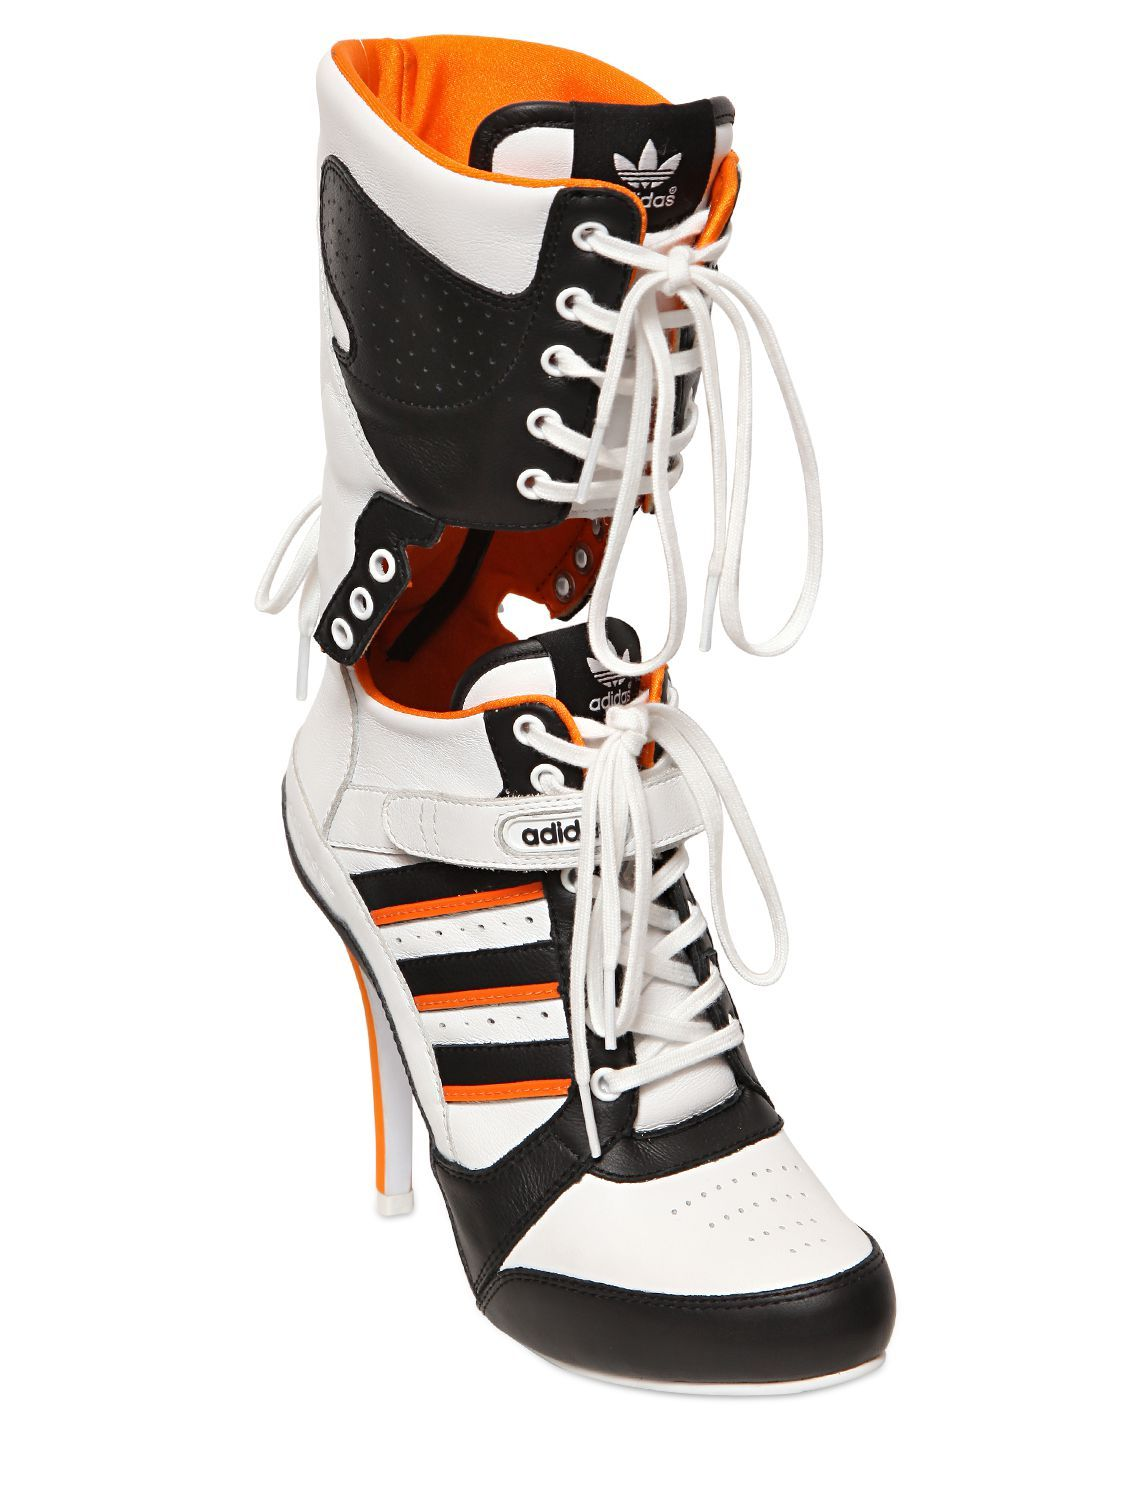 Jeremy Scott Adidas 130mm Heeled Sneakers | Leather boots